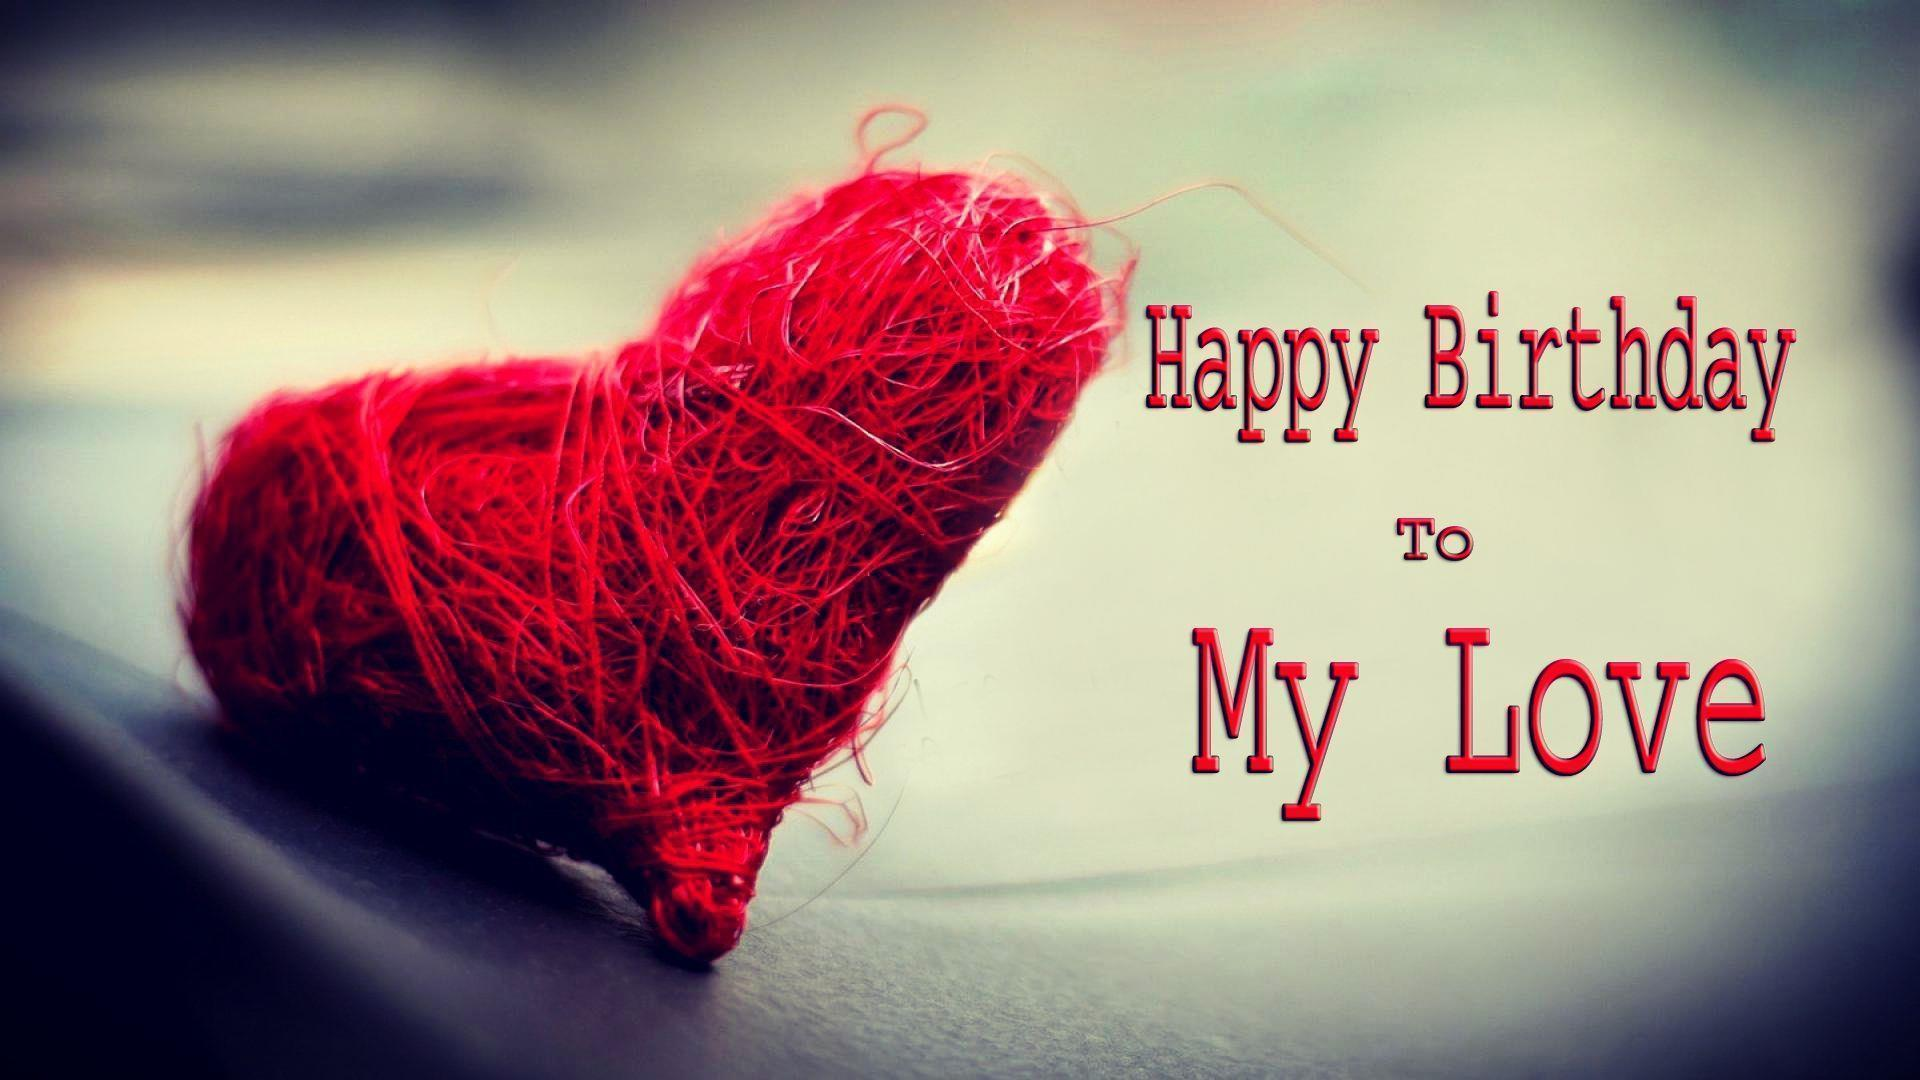 Happy Birthday To My Love HD Wallpapers Messages Quotes